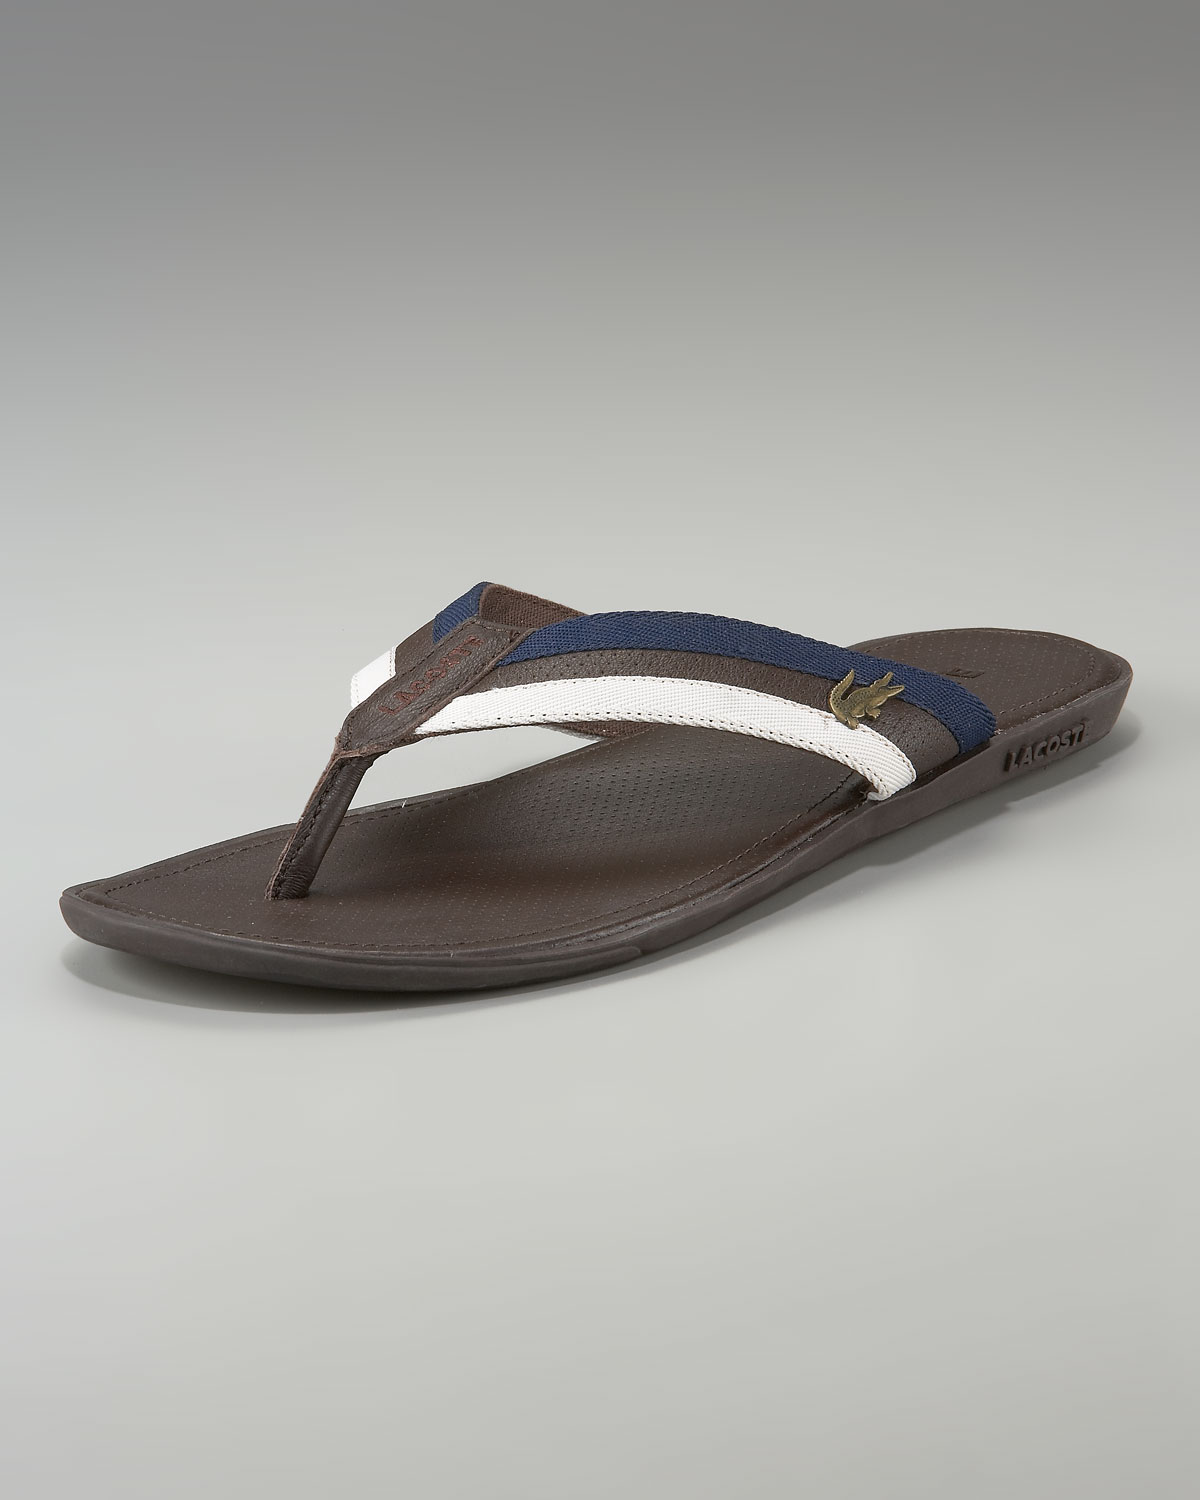 f65629acd25e35 Lyst - Lacoste Carros Striped Flip-flop in Brown for Men